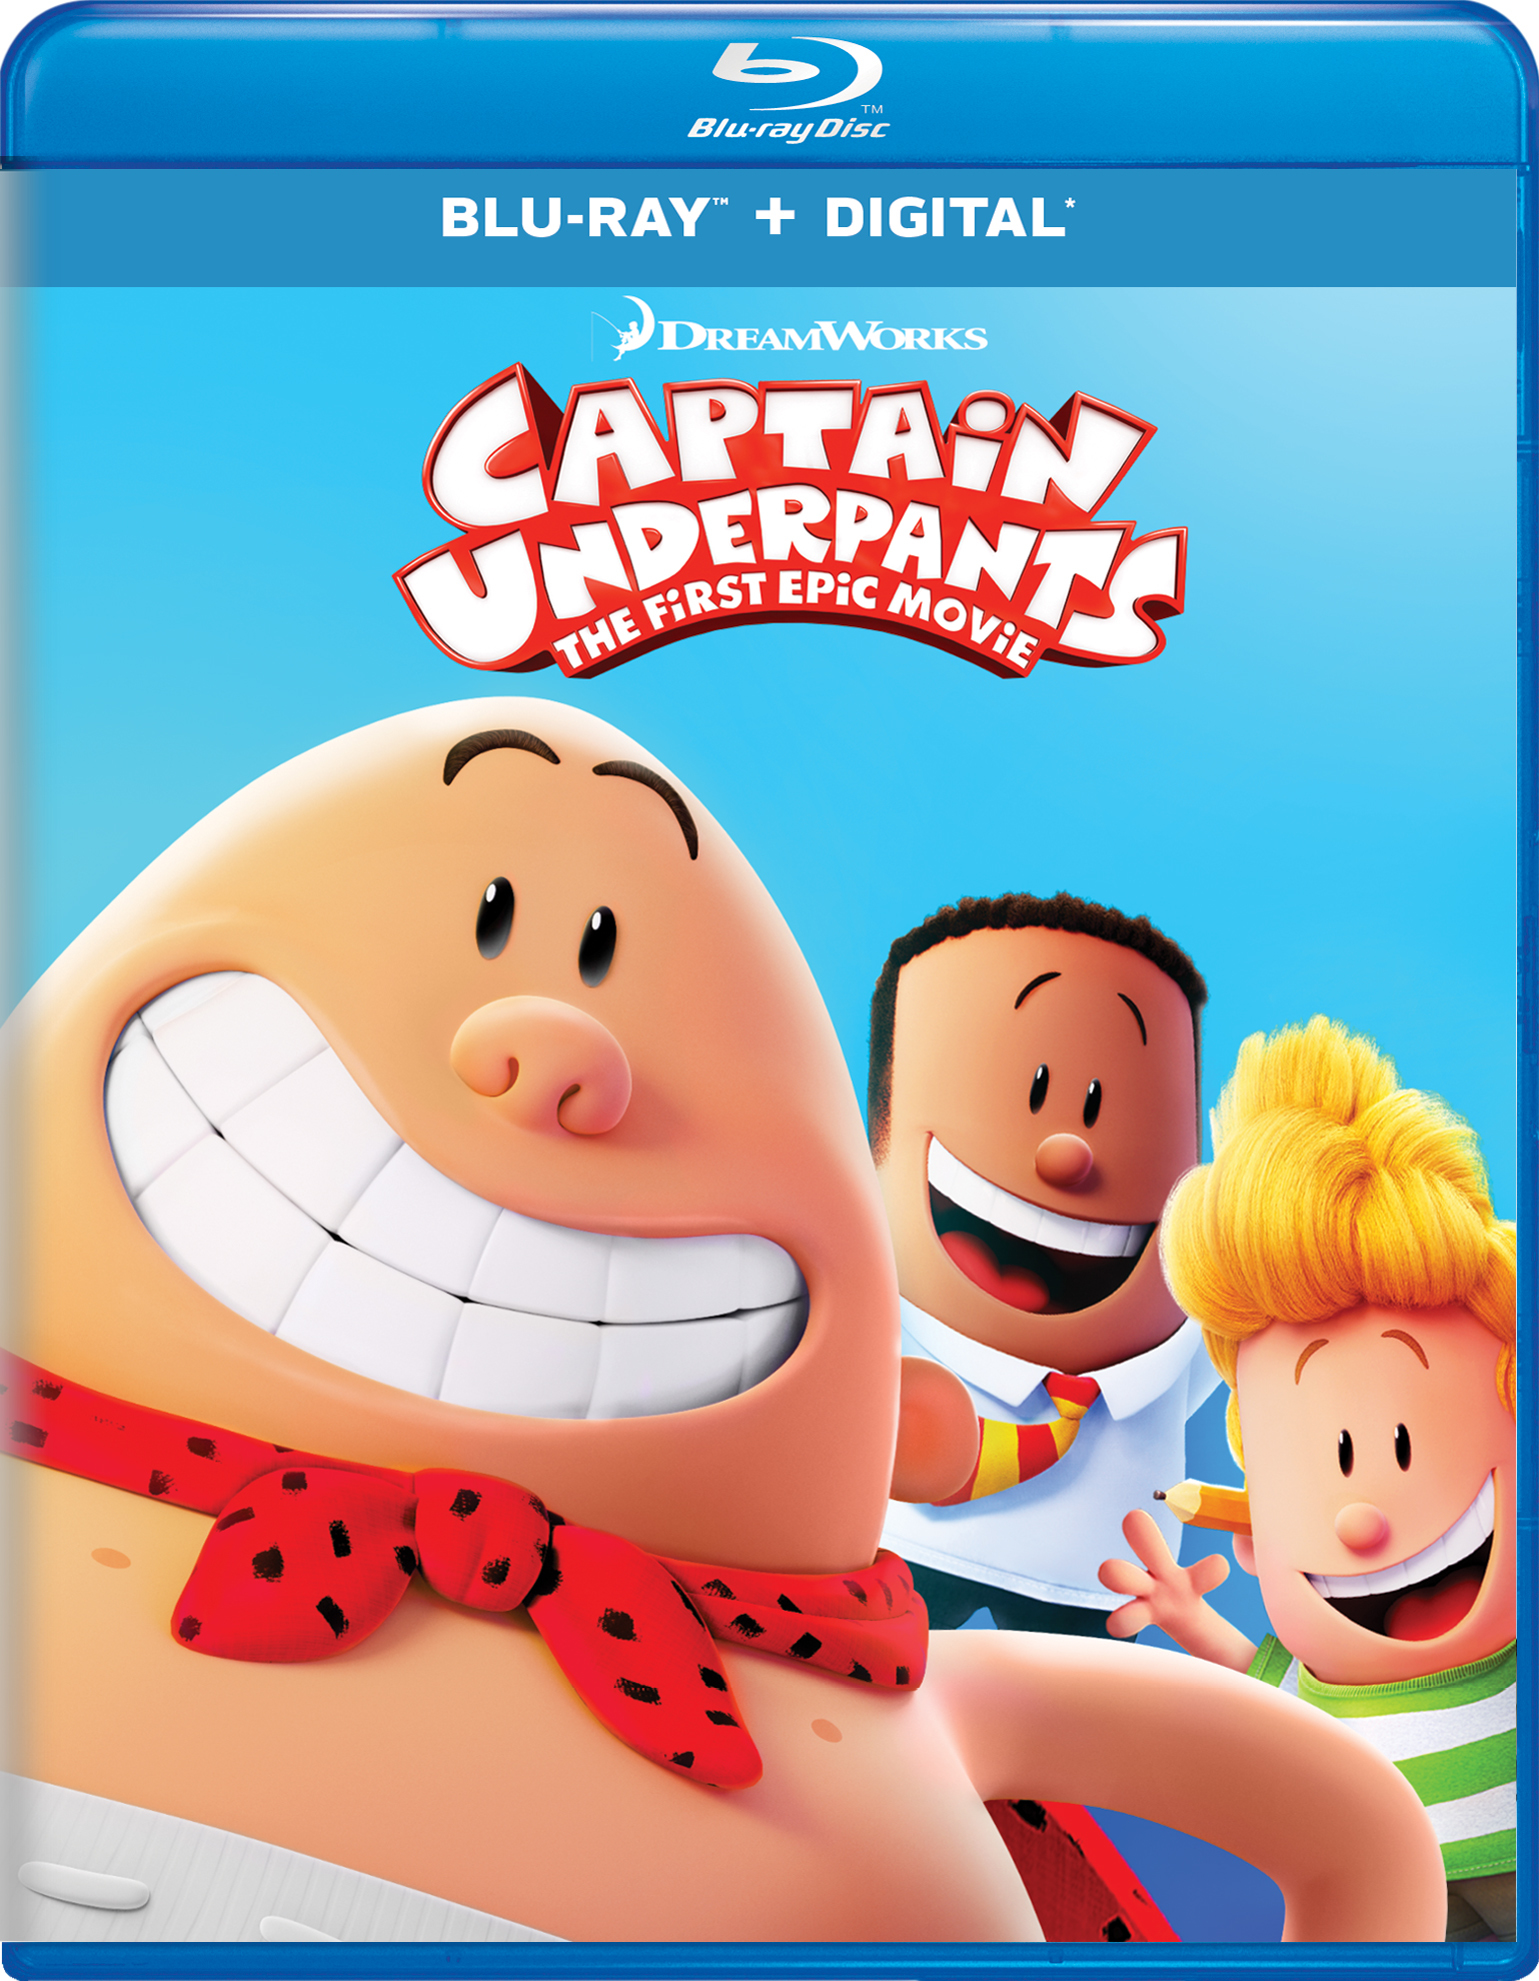 Download Captain Underpants The First Epic Movie 2017 1080p 10bit Bluray X265 Hevc Org Torrent Ext Torrents